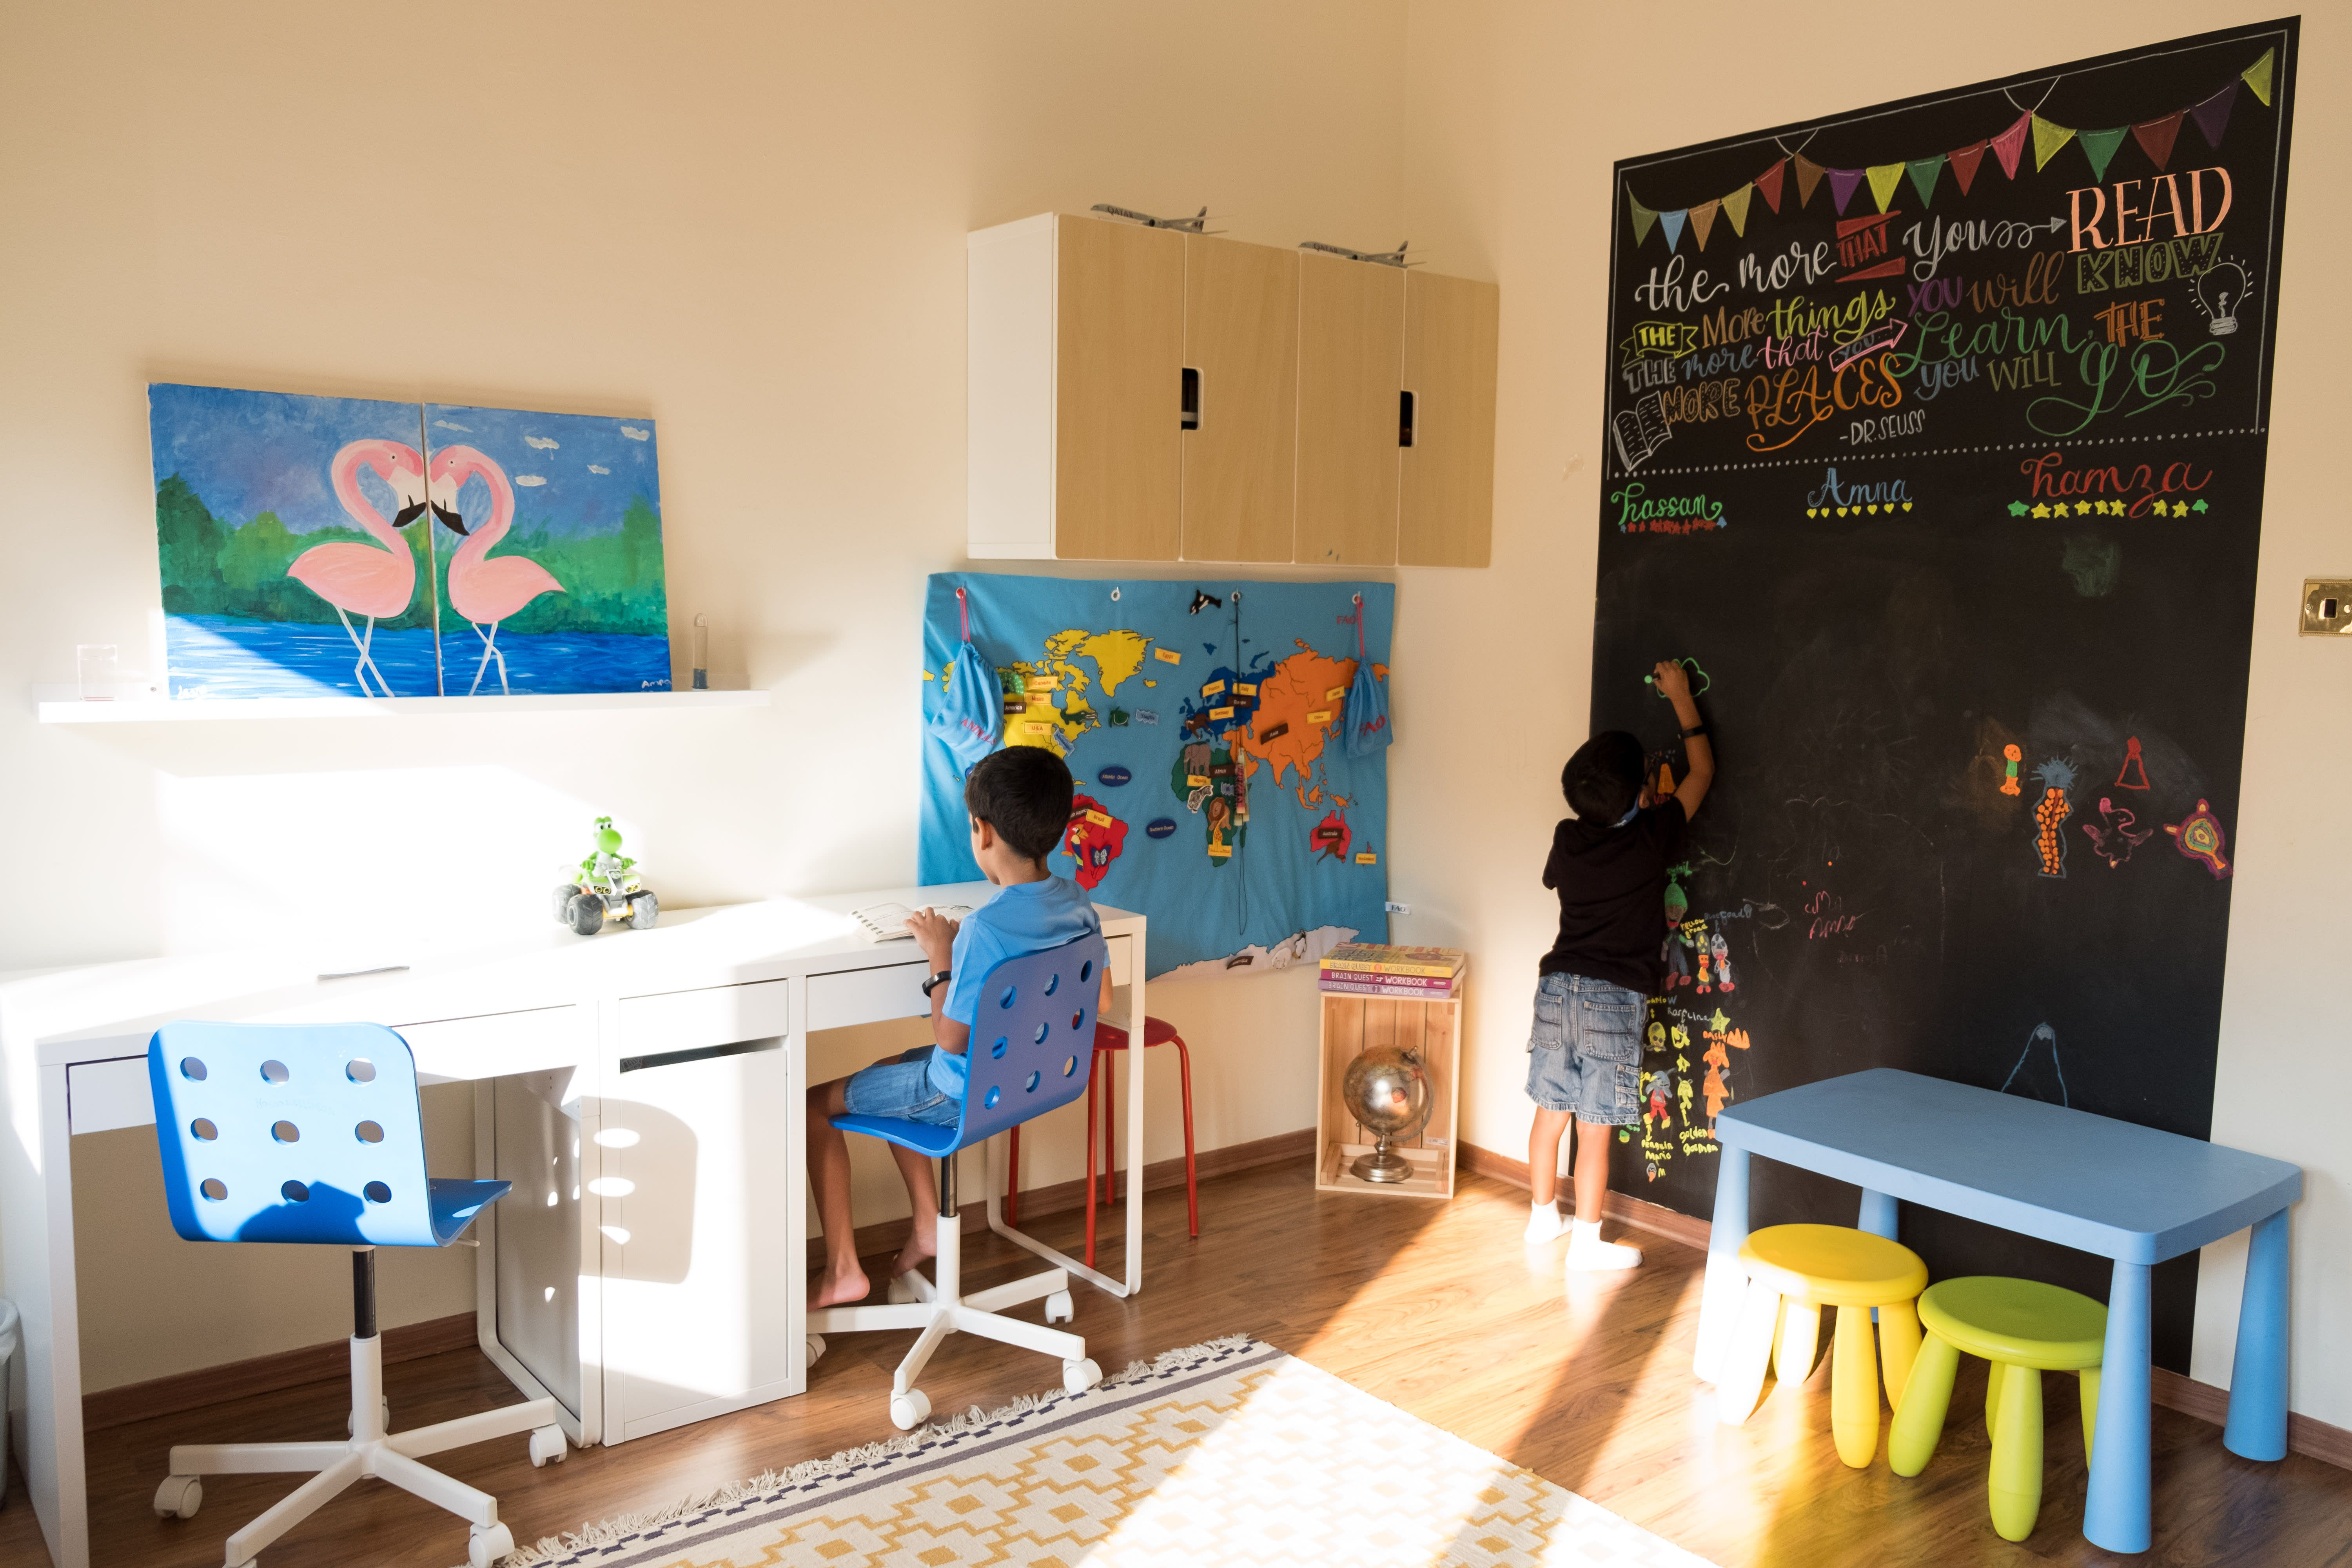 A rental homes made personal with color and culture